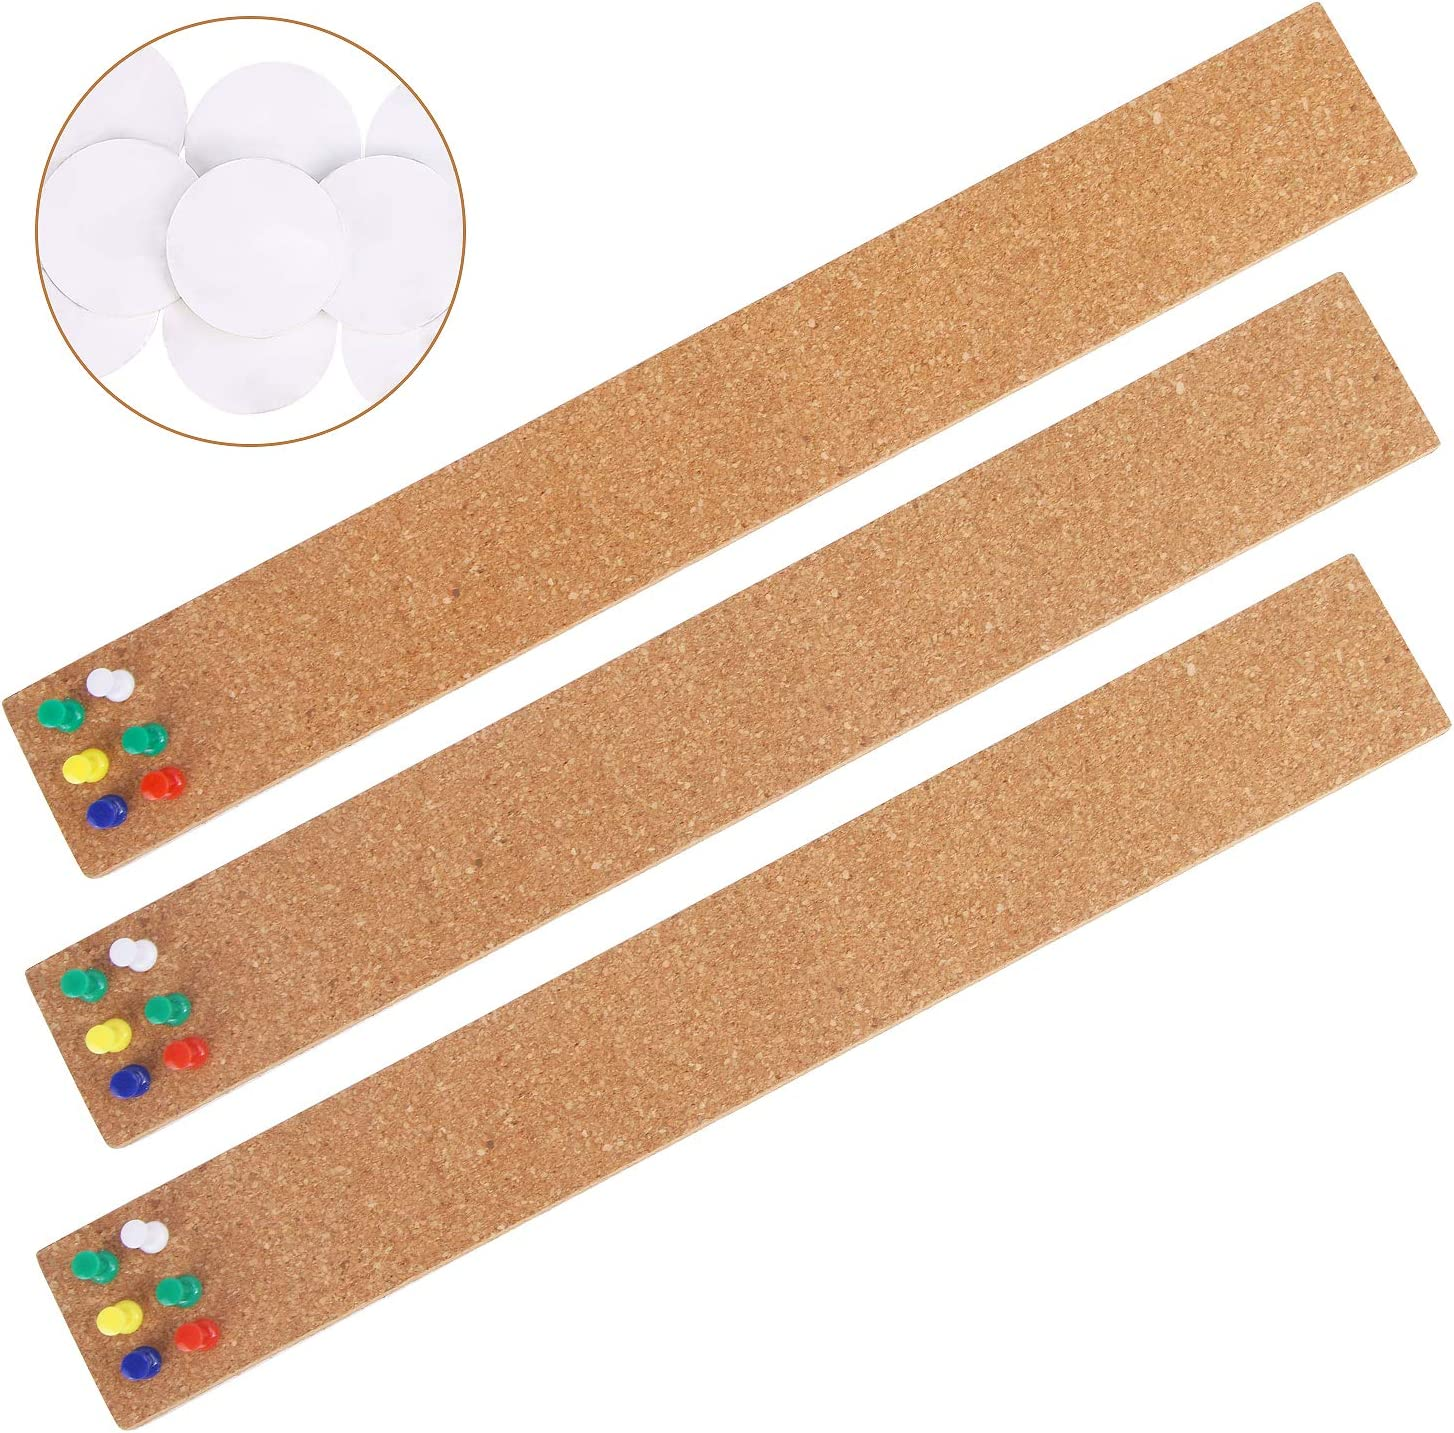 "3 Pcs Bulletin Strip Cork Strip Cork Bulletin Bar Strip Natural Frameless Cork Board Strips with Strength Adhesive Backing for Office, School, Home Holiday Decor 15"" X 2""- 1/2"" Thick"